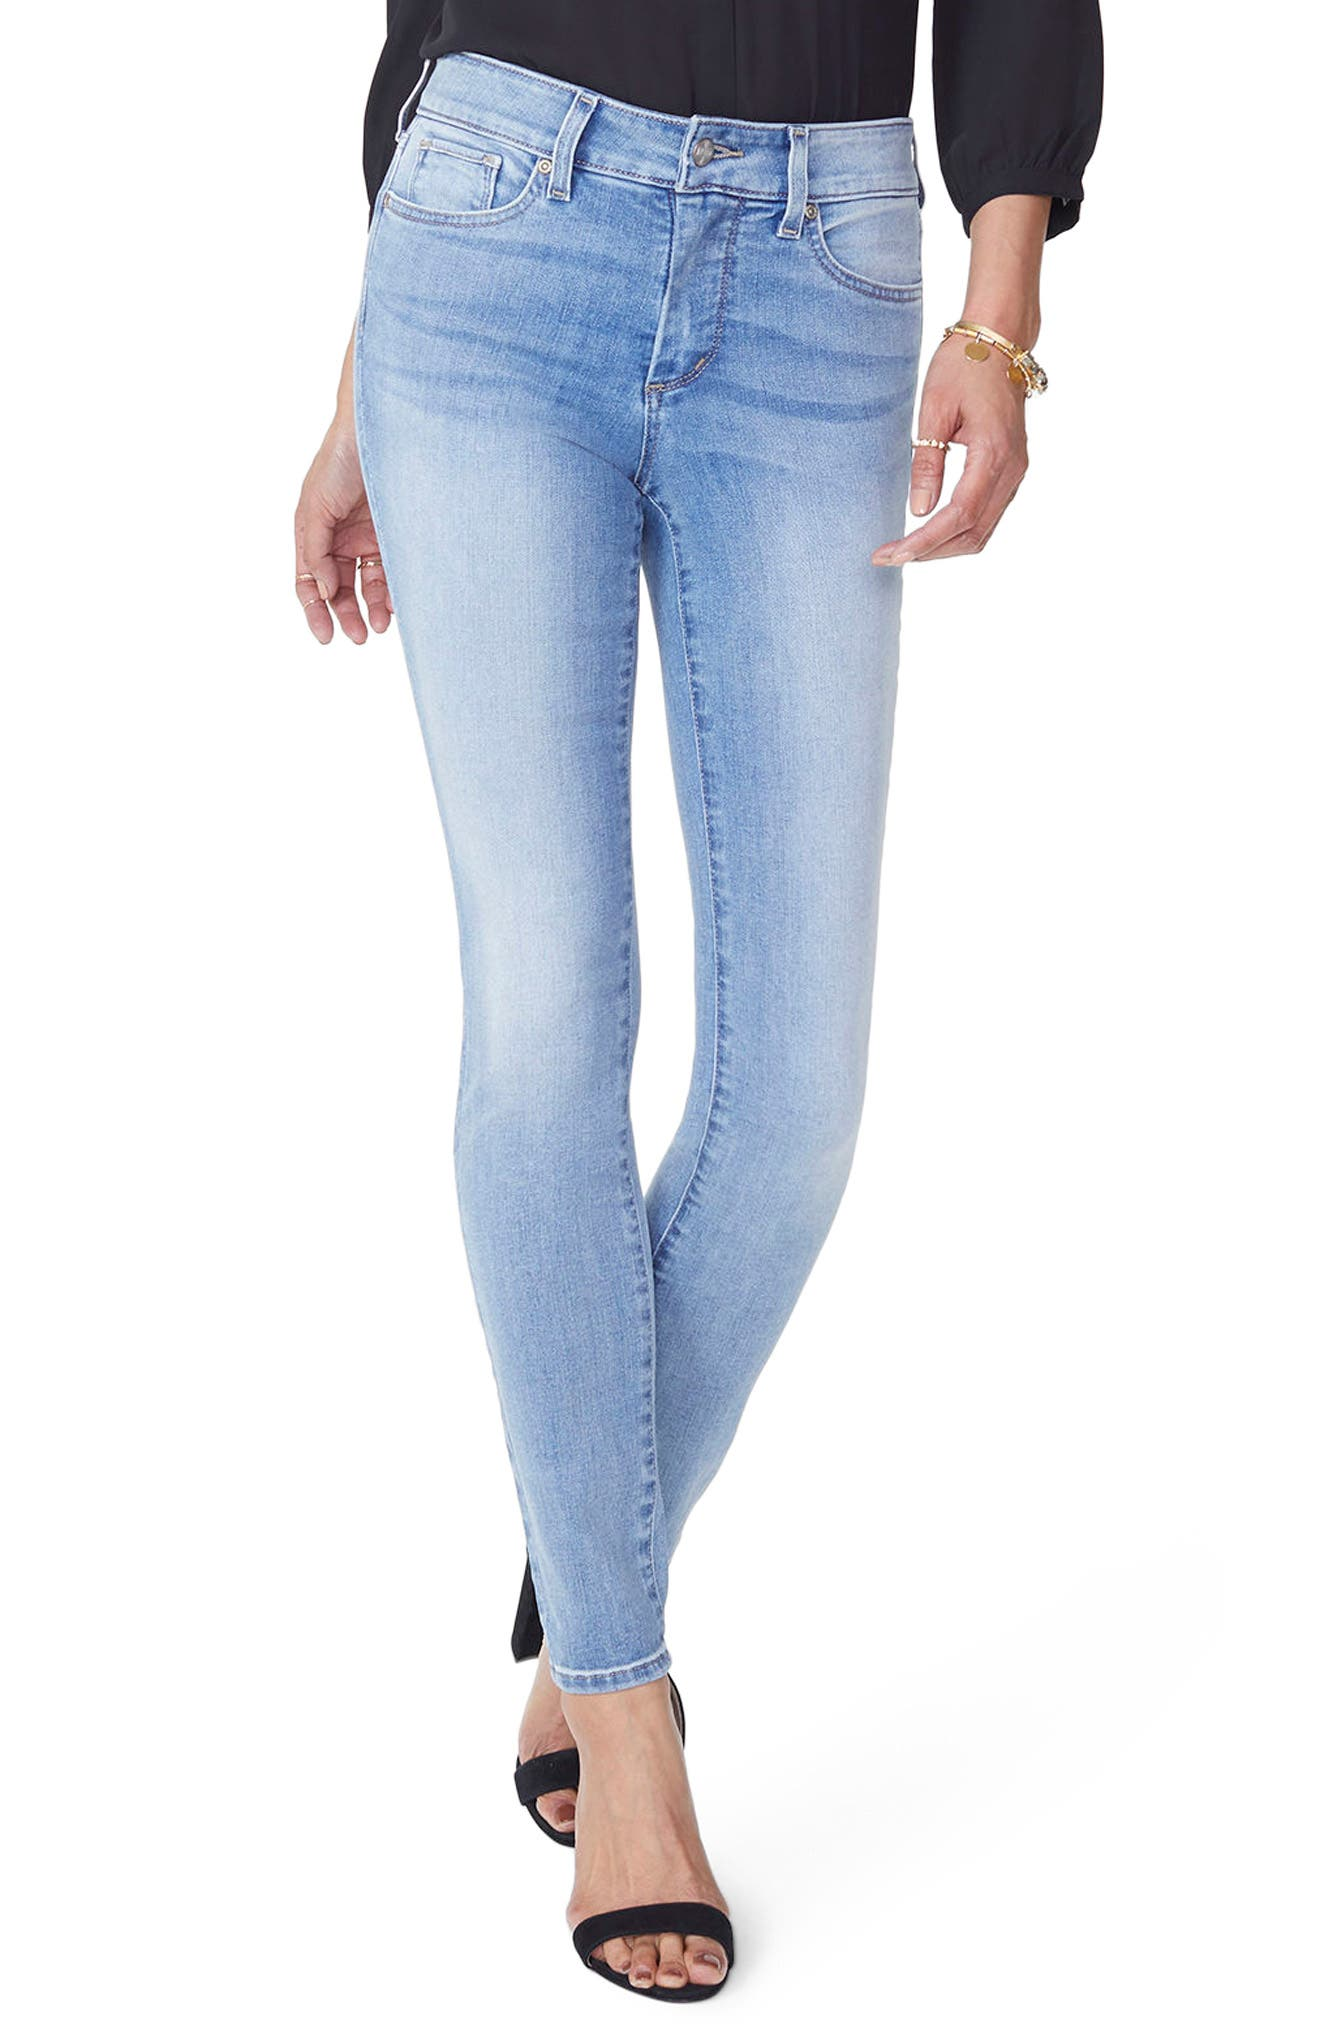 Ami High Waist Stretch Skinny Jeans,                             Main thumbnail 1, color,                             DREAMSTATE